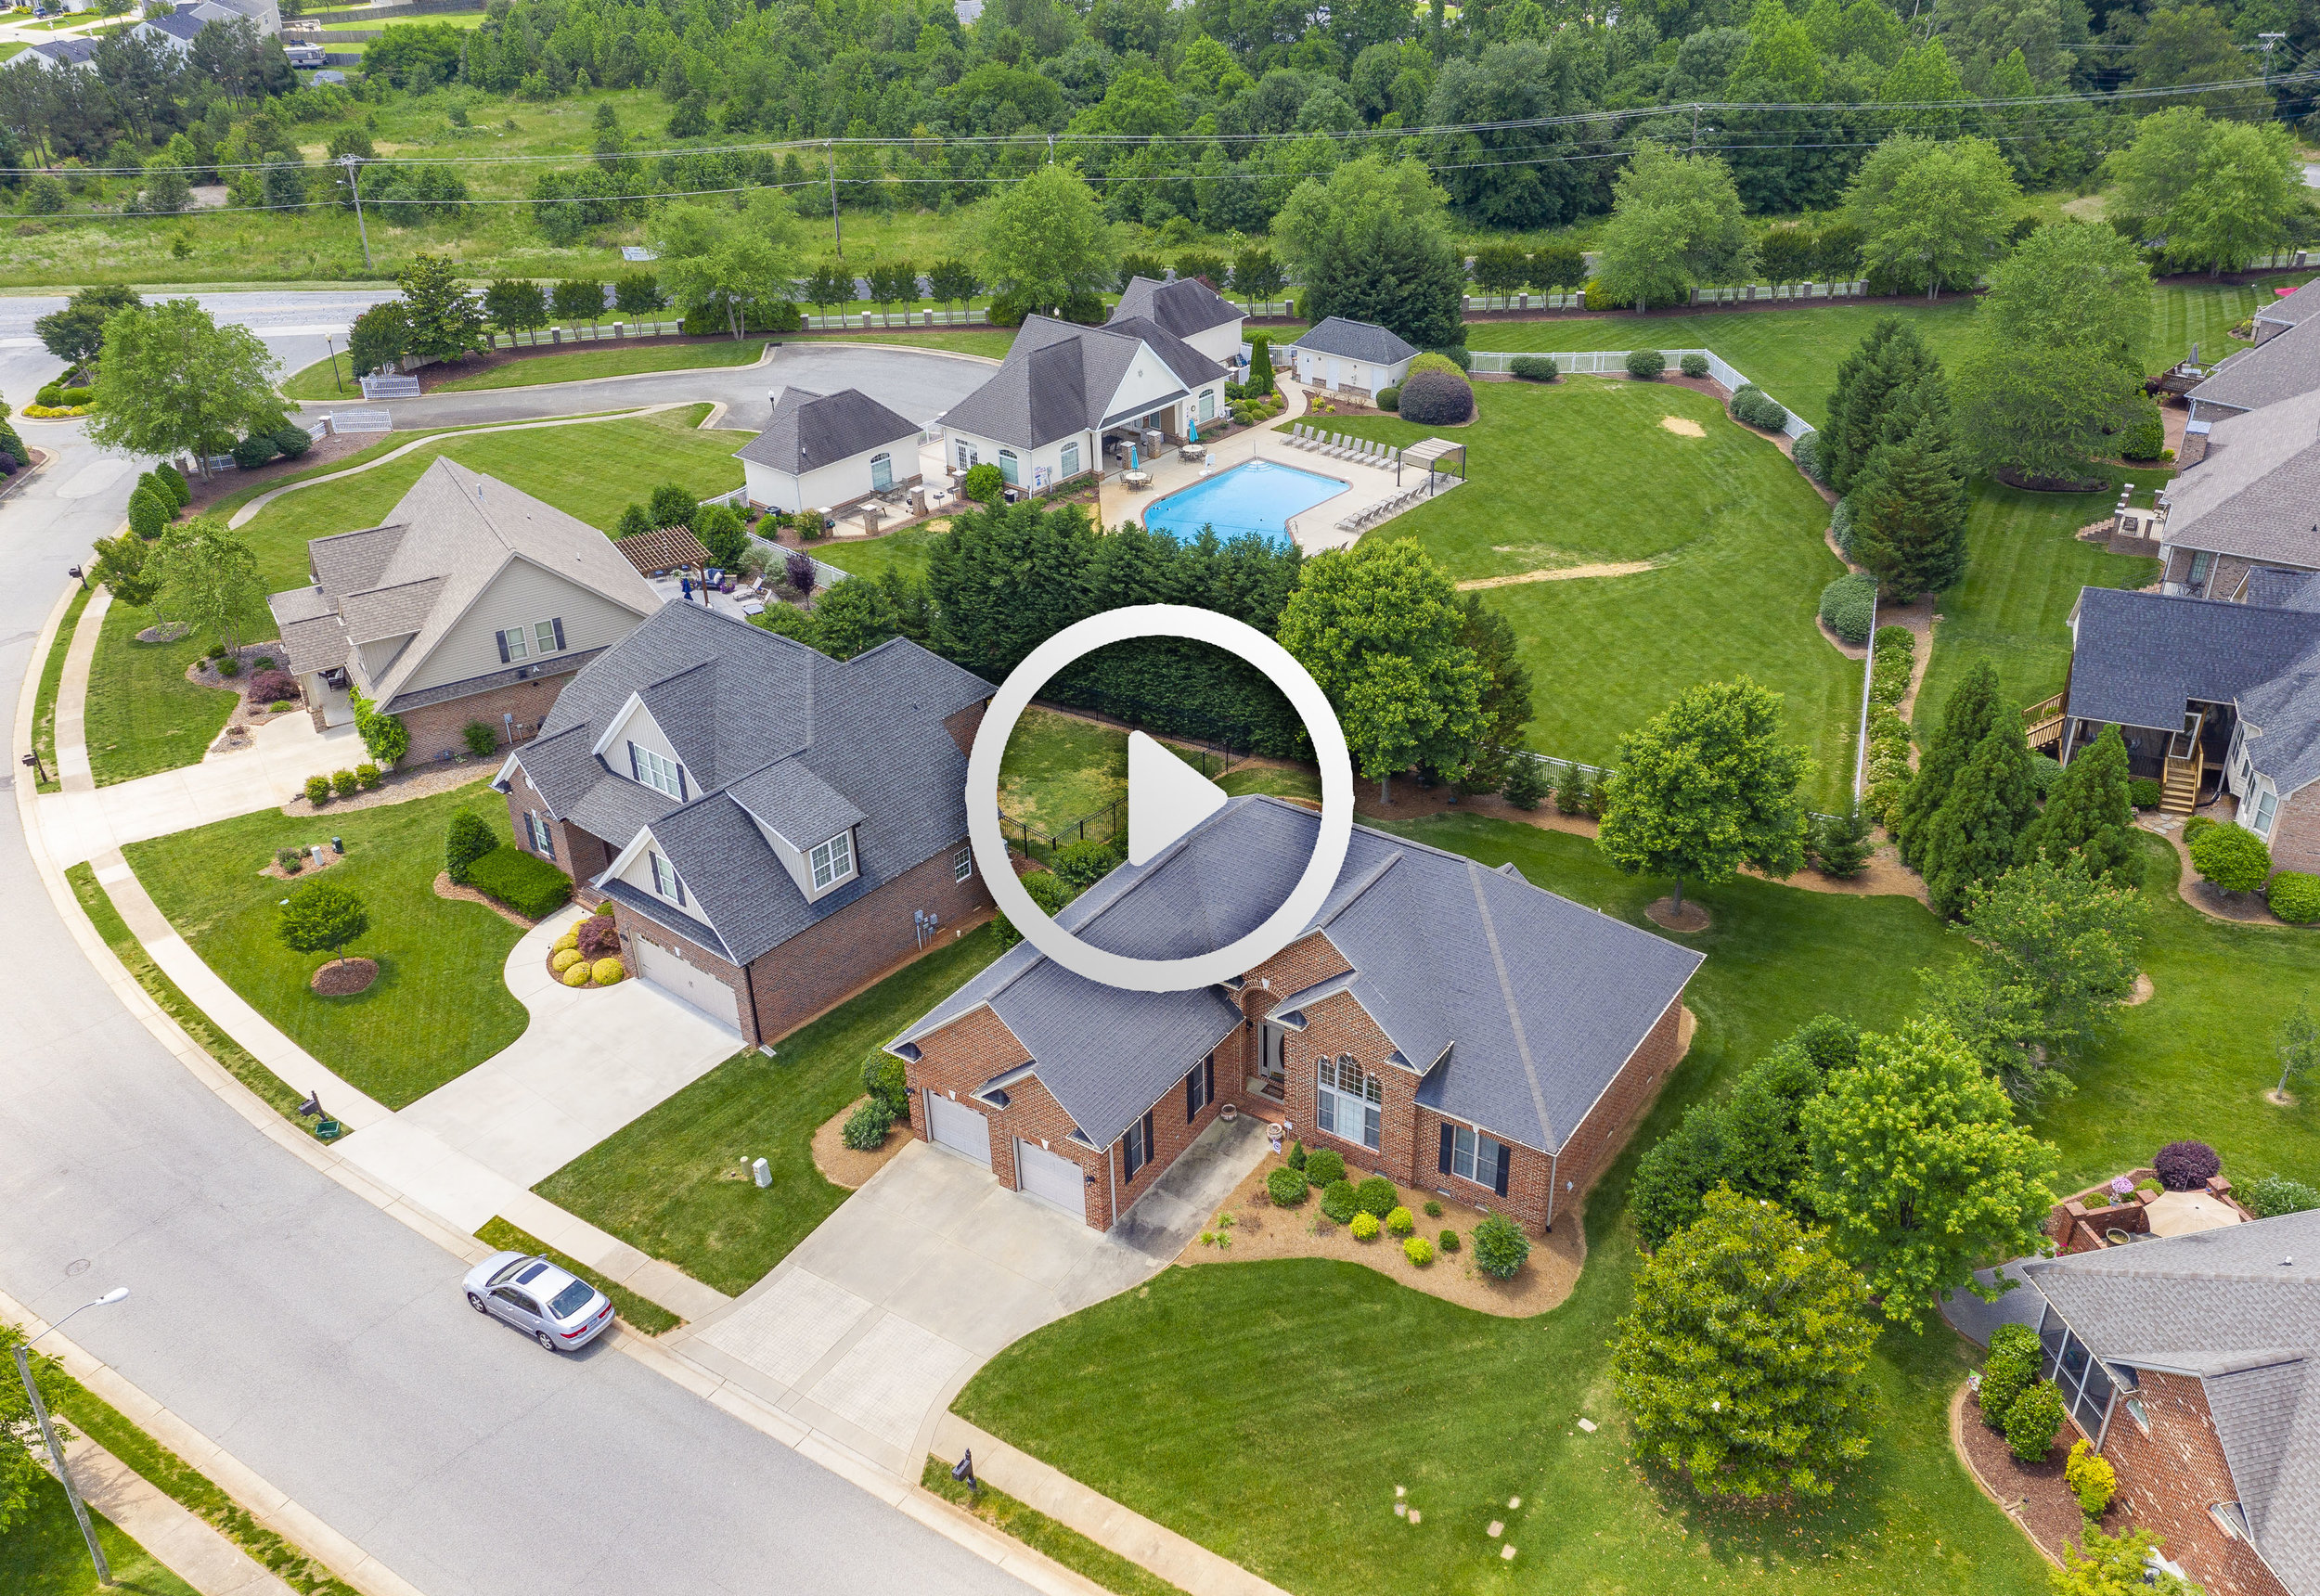 Cinematic Video Tour - A cinematic video tour is a great way to showcase a property. This video walkthrough includes professional video editing with music and will be approximately 1.5-2.5 minutes in length. Agent video tours can also be included upon request.